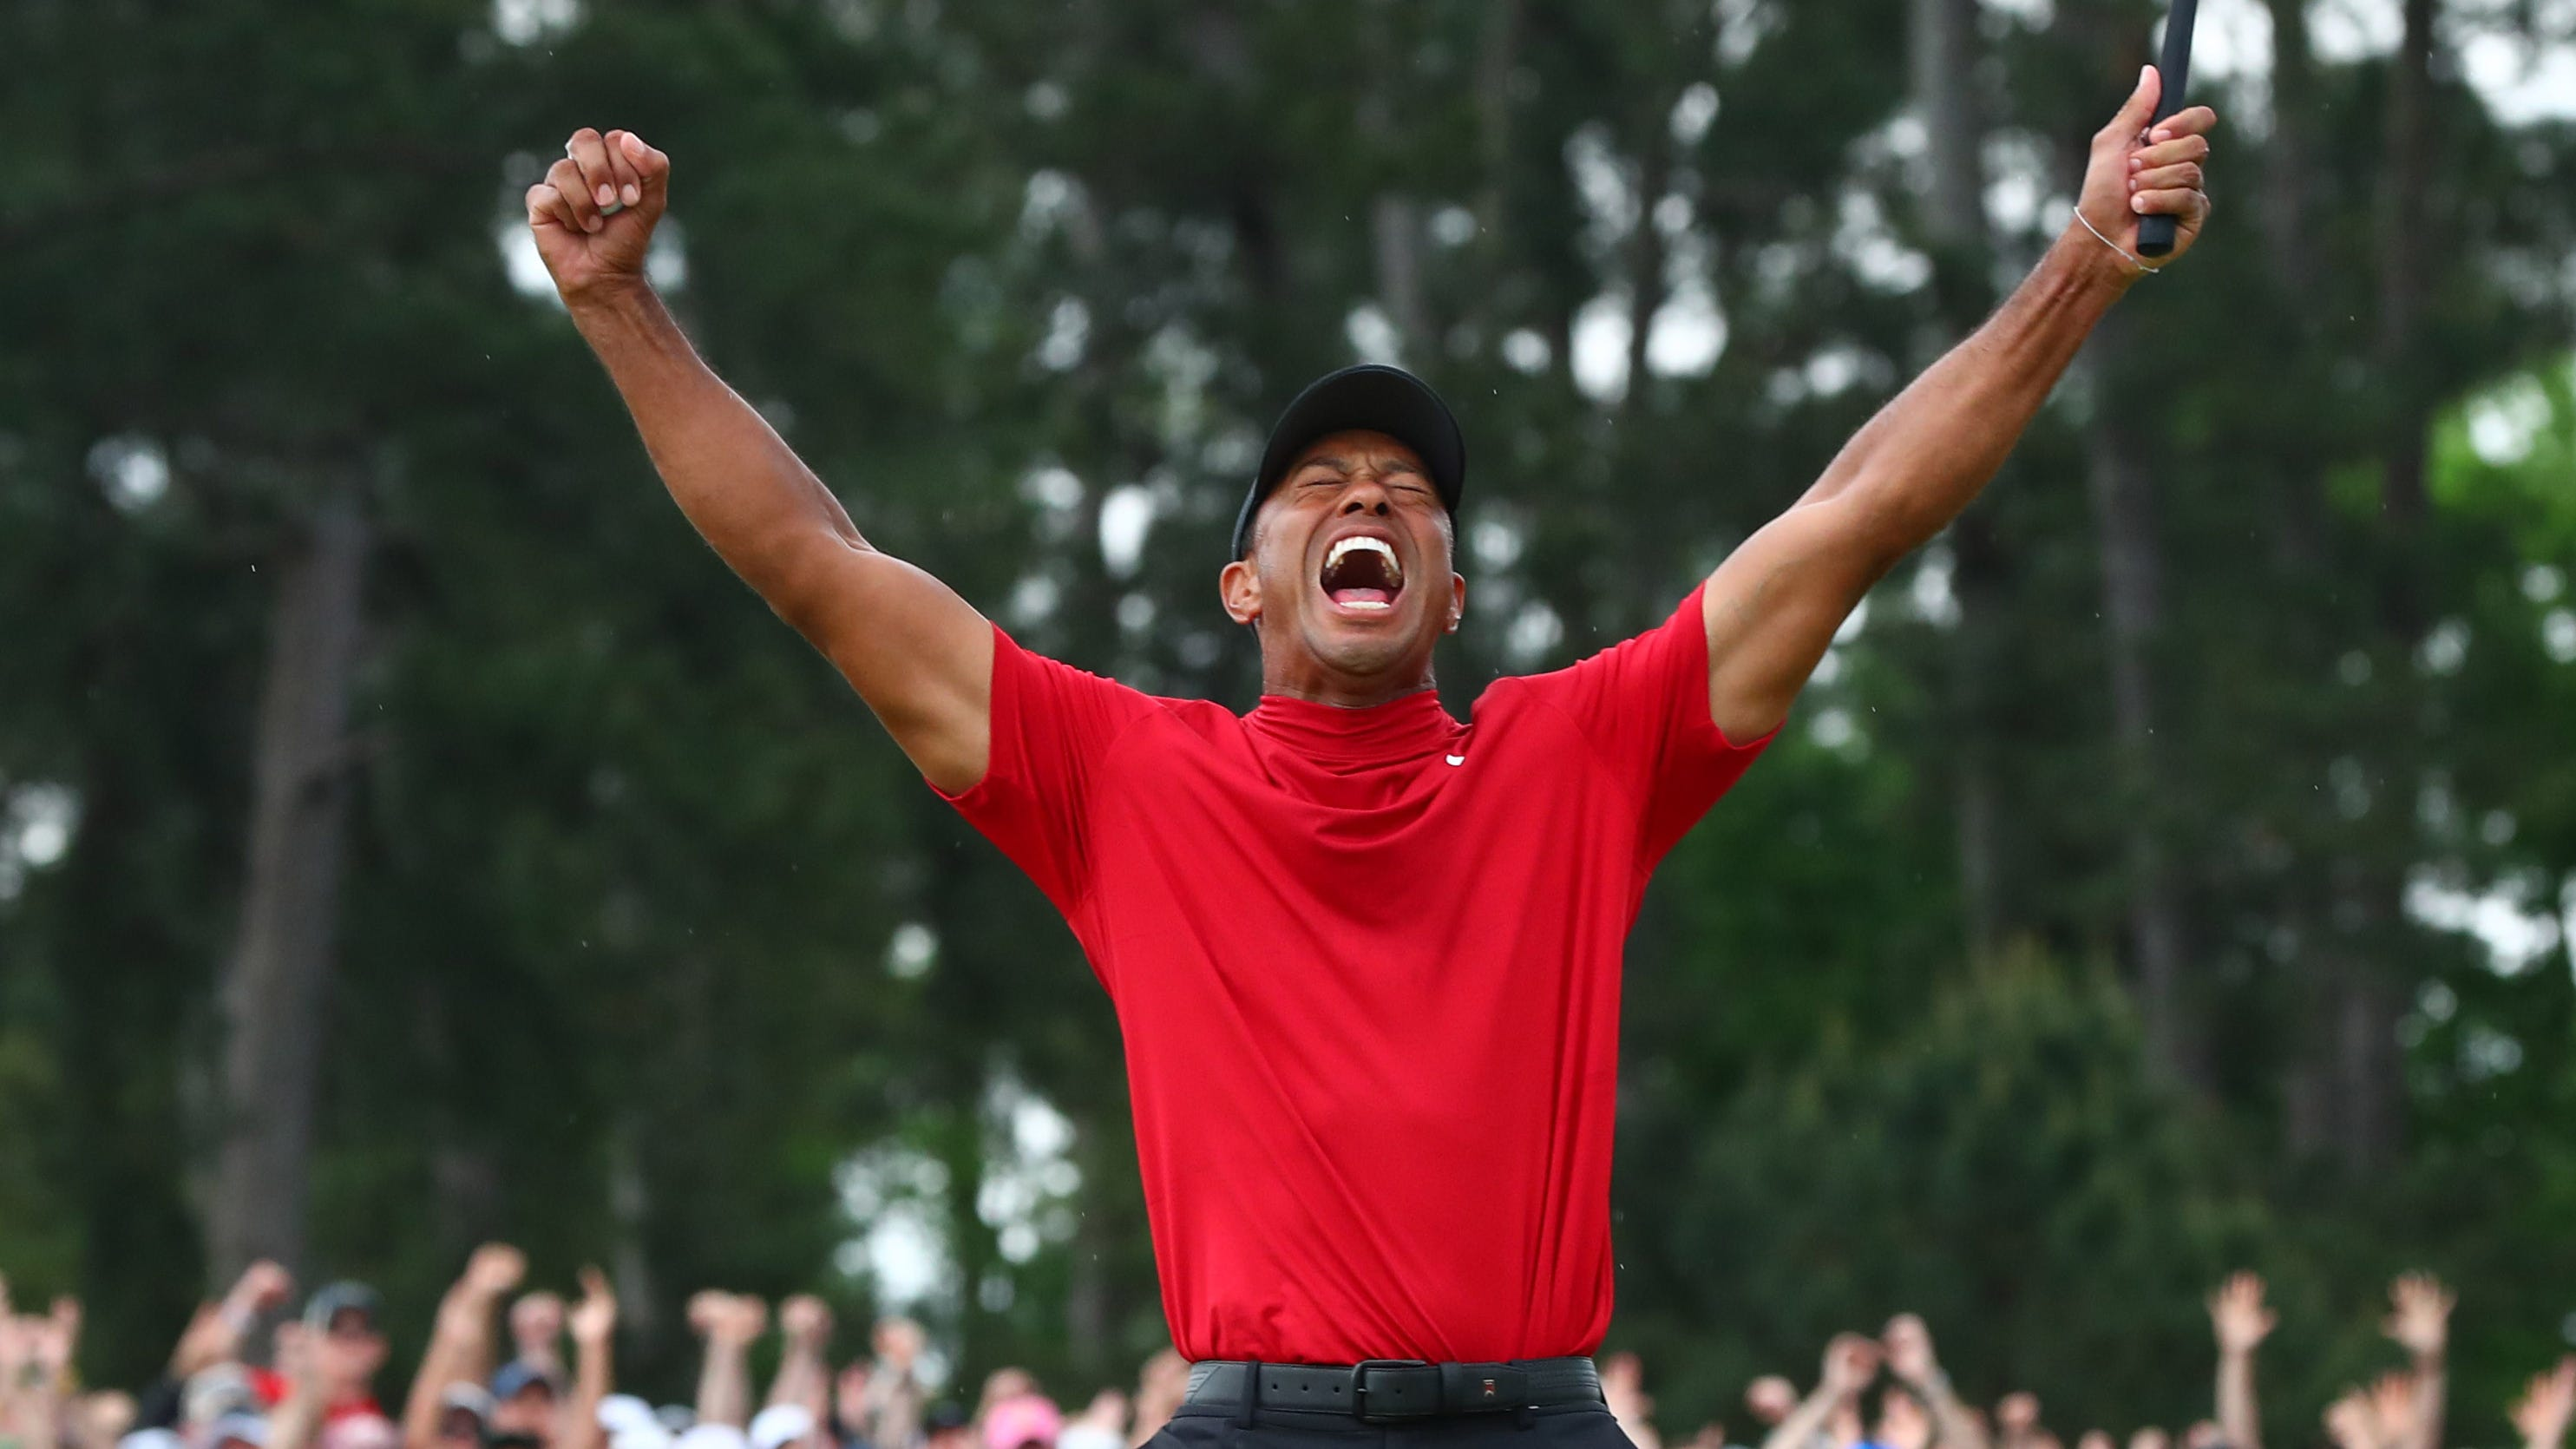 Tiger Woods celebrates after making a putt on the 18th green to win The Masters golf tournament at Augusta National Golf Club, April 14, 2019.